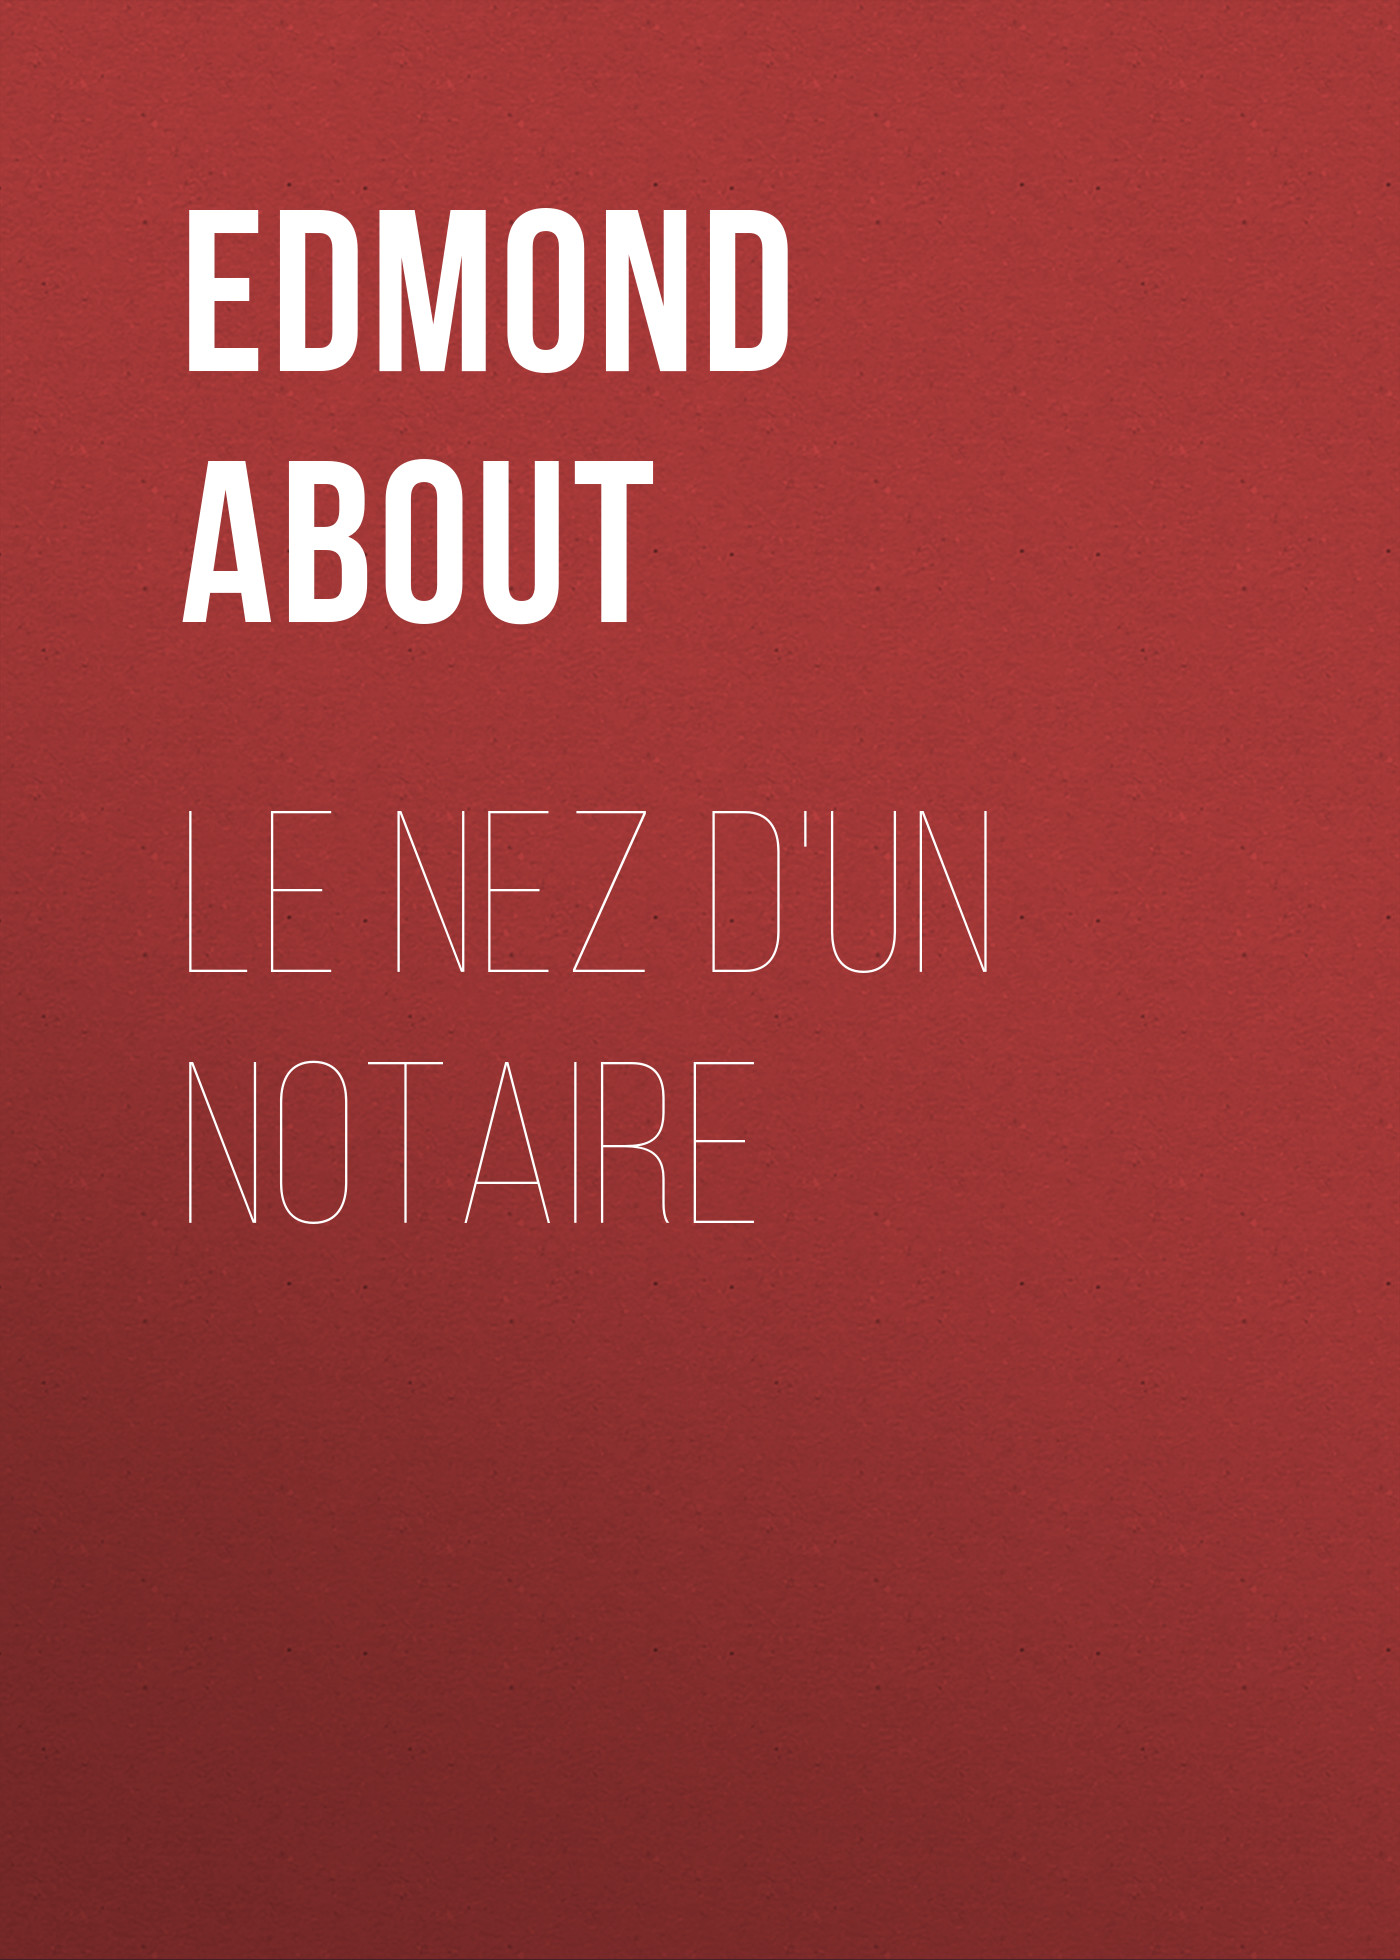 About Edmond Le nez d'un notaire le journal d un fou le nez